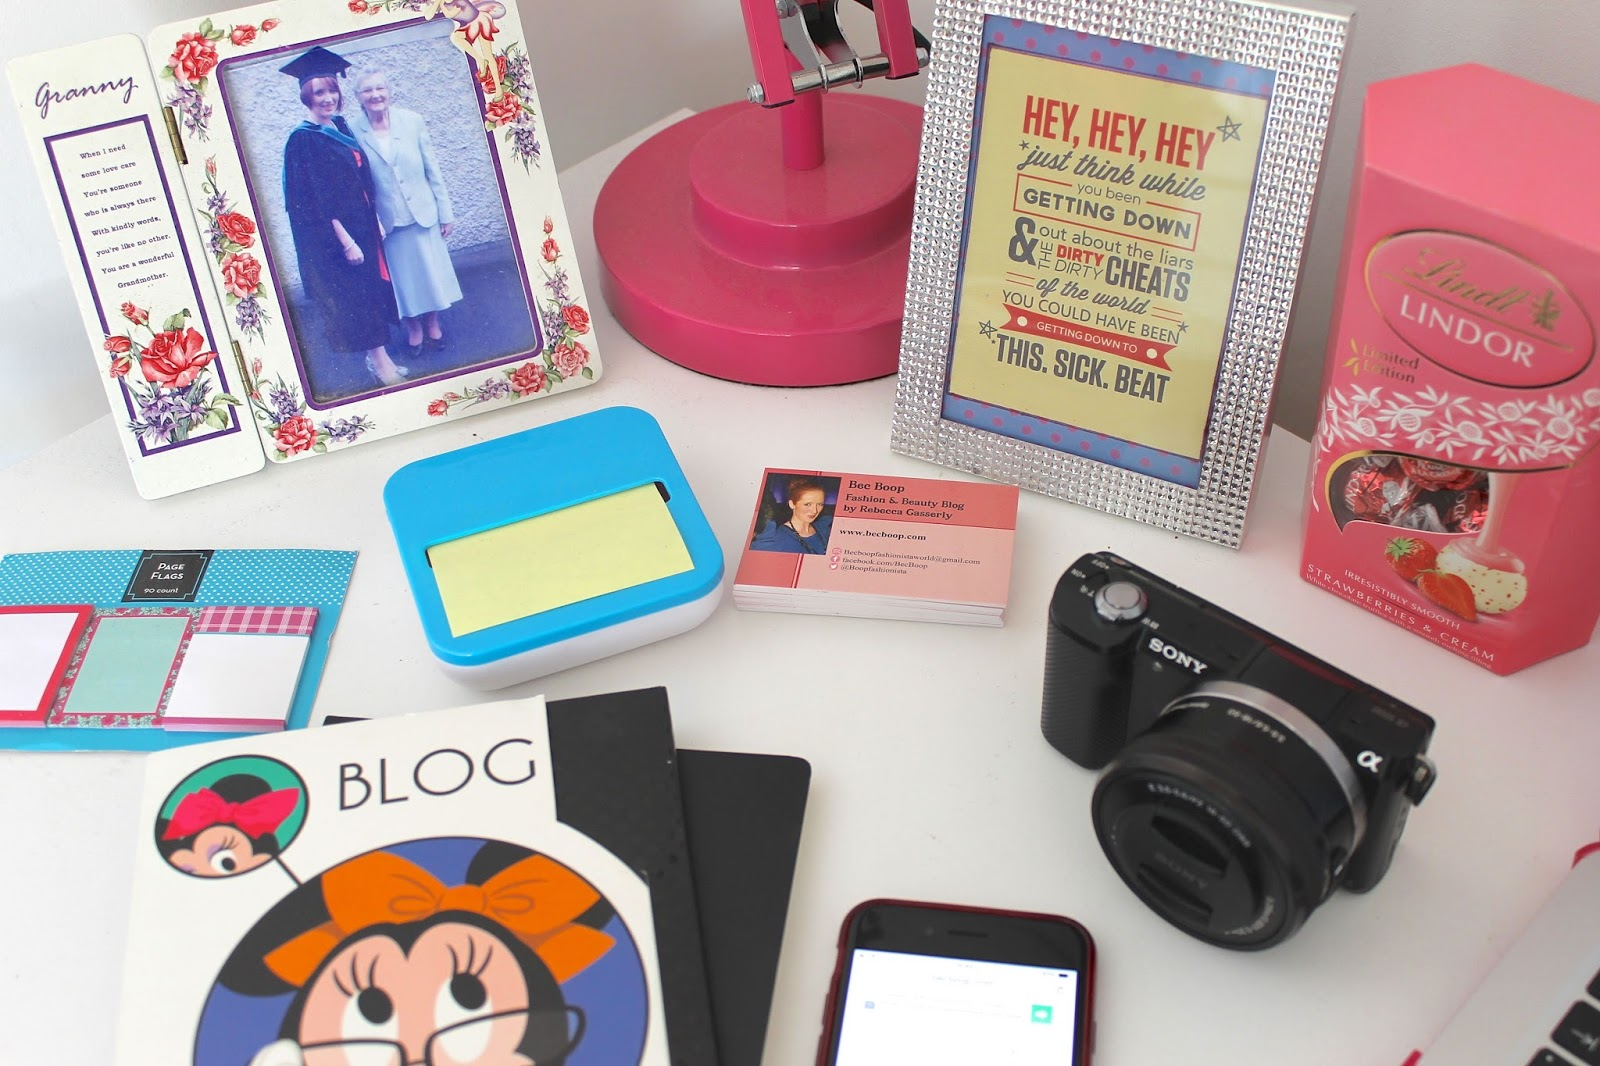 Bec Boop blogging essentials